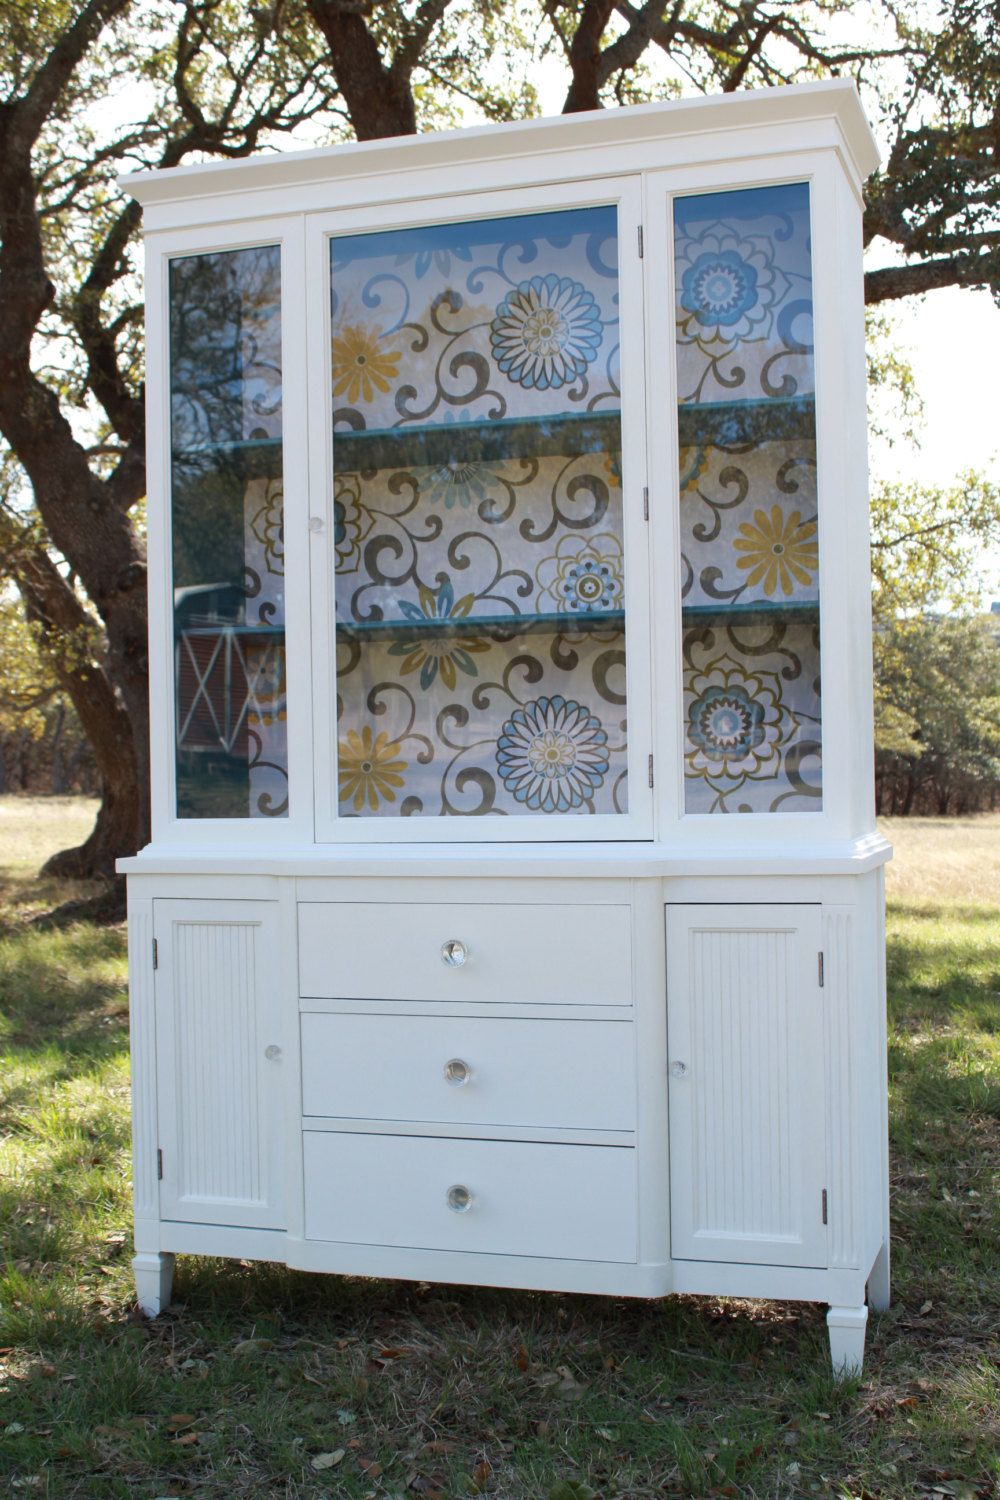 Best Modern Cottage Painted China Cabinet 775 00 Via Etsy 400 x 300